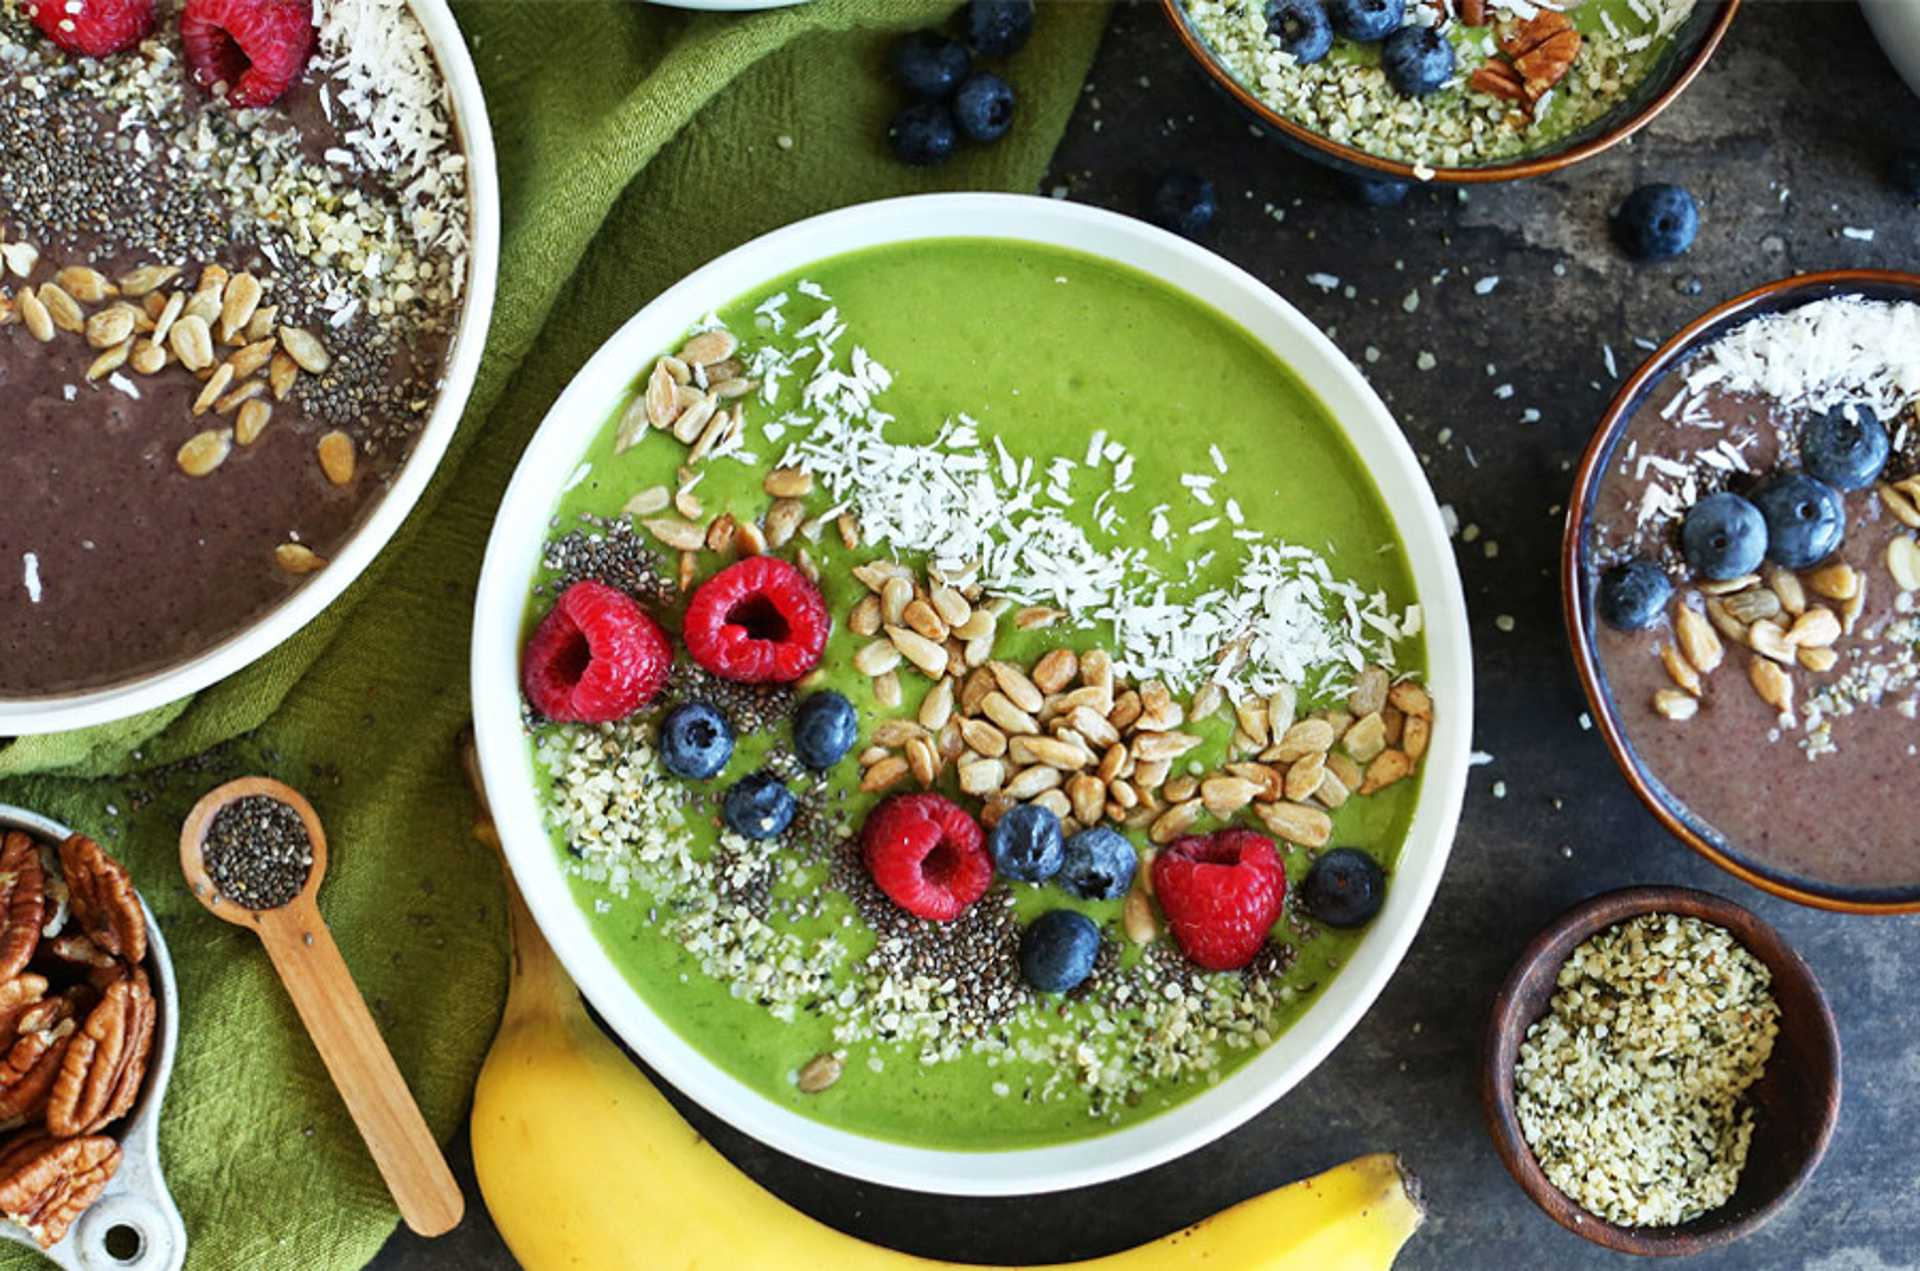 Super green smoothie bowl - avocados and kale FTW!